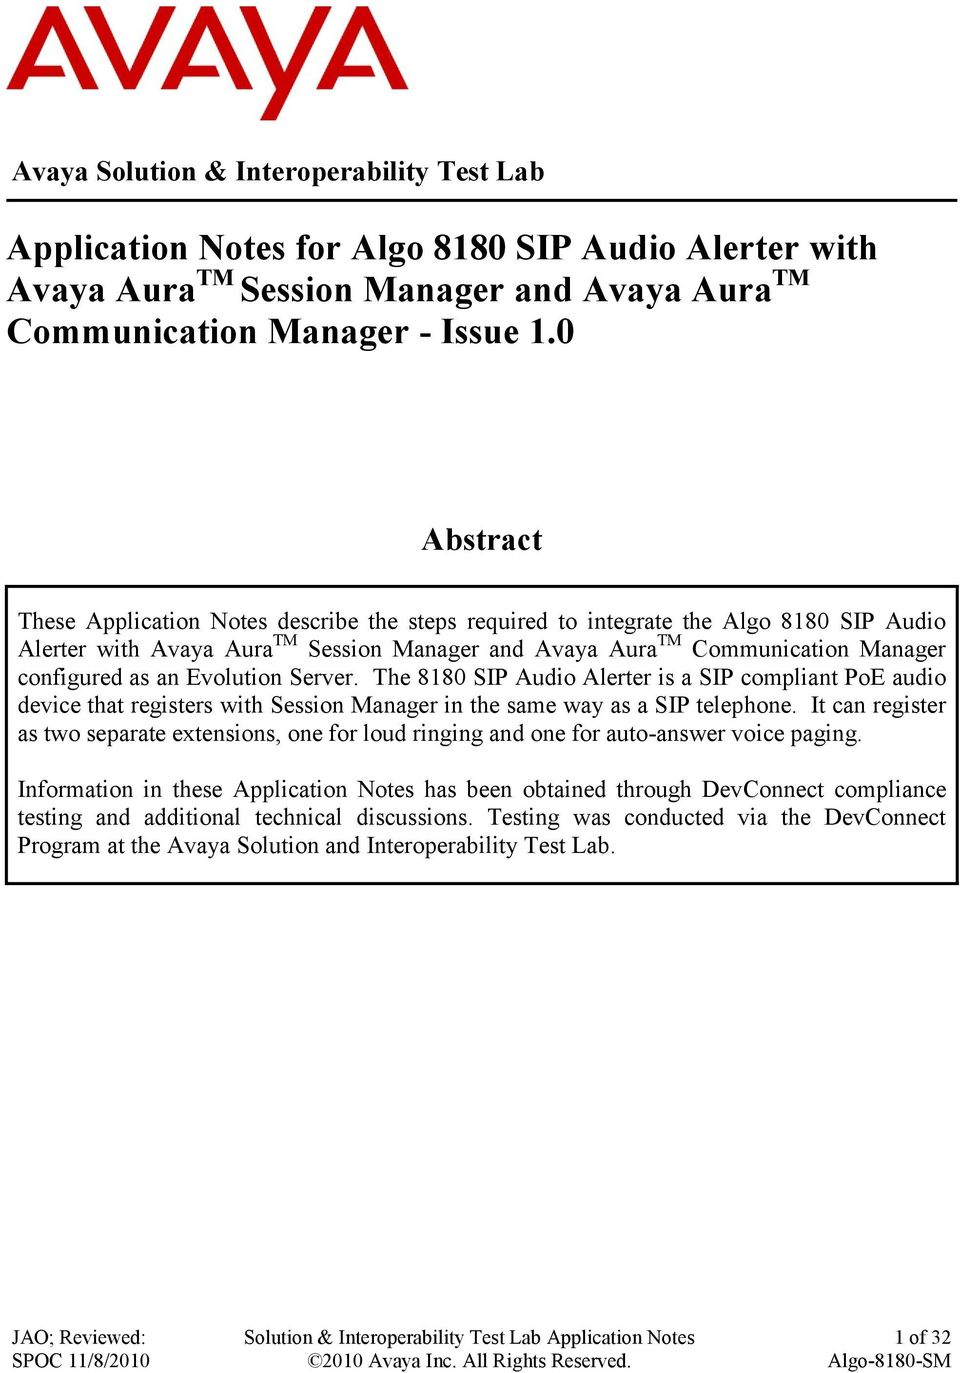 Evolution Server. The 8180 SIP Audio Alerter is a SIP compliant PoE audio device that registers with Session Manager in the same way as a SIP telephone.